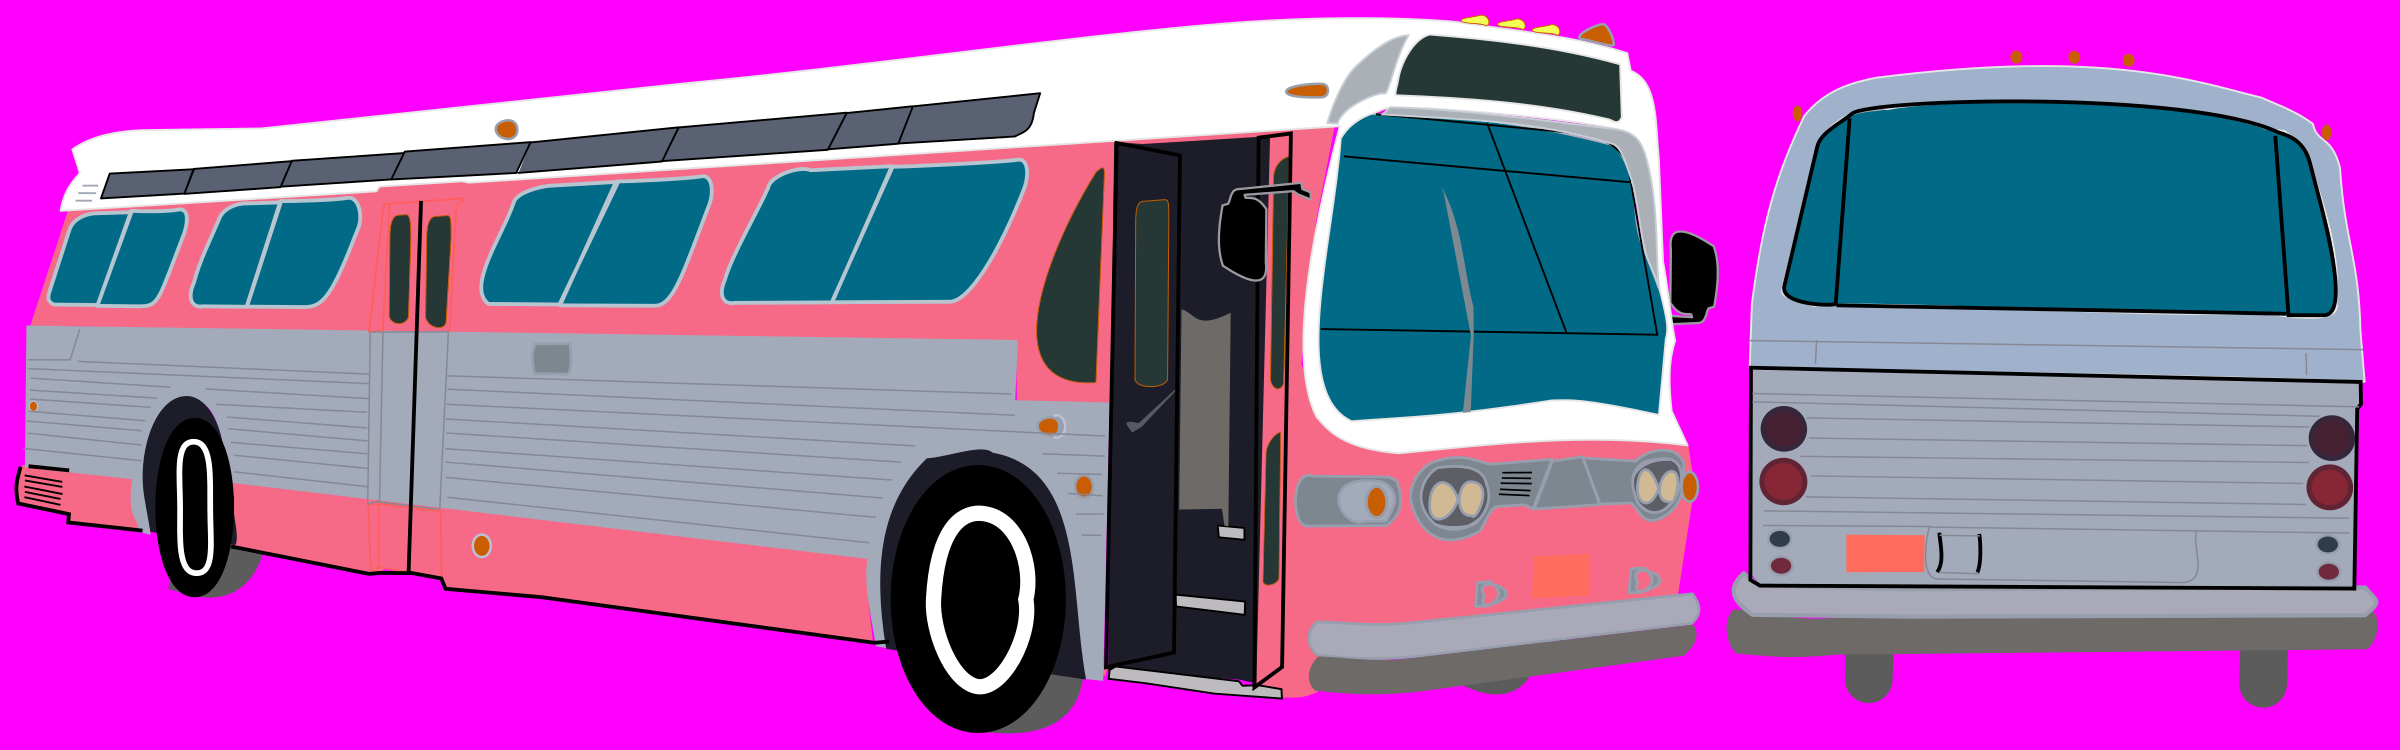 Transit Bus by Rfc1394